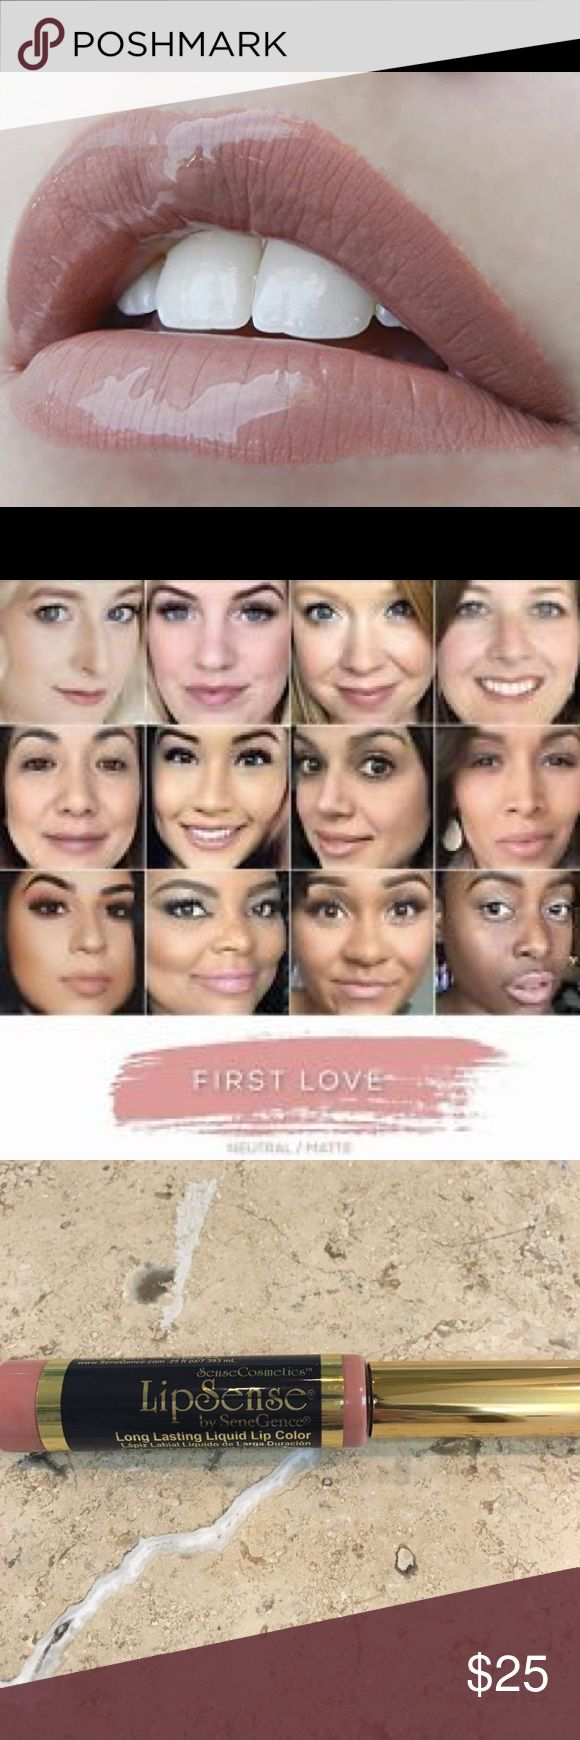 Lipsense FIRST LOVE 18 Hour Lipcolor IN STOCK! Brand new, sealed! First Love is THE hottest pinky nude of the collection!  The premier product of Senegence, LipSense lasts all day – up to 18 hours. It is water-proof, kiss-proof, smudge-proof, and completely budge-proof. LipSense comes in a variety of captivating colors and can be layered to produce your own custom look.  Must be worn with a Lipsense gloss.Brand new, sealed!  COMMENT BELOW WITH YOUR EMAIL TO GET DISCOUNT INFORMATION, I…